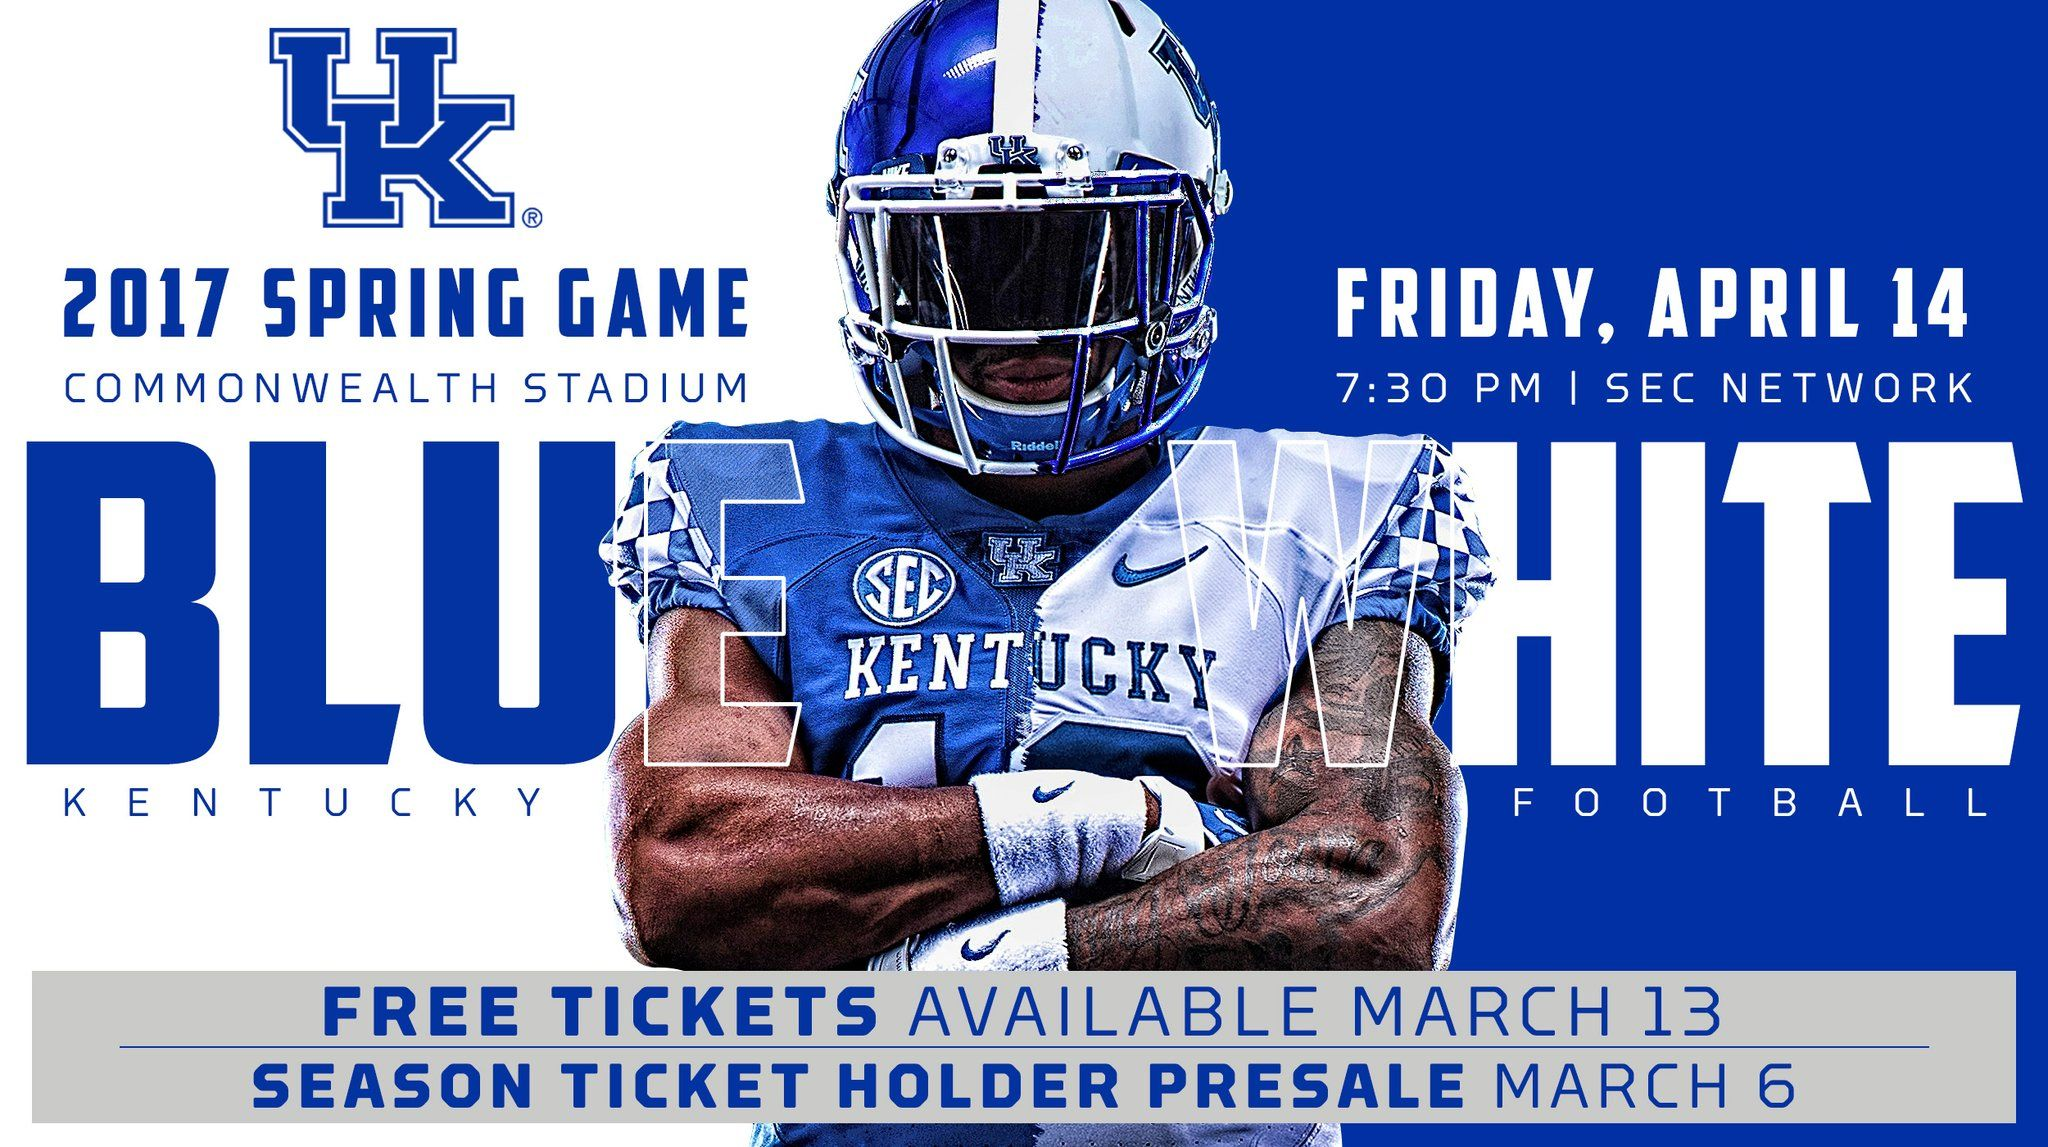 Pin by Brandon Kolditz on Kentucky Athletics Graphics